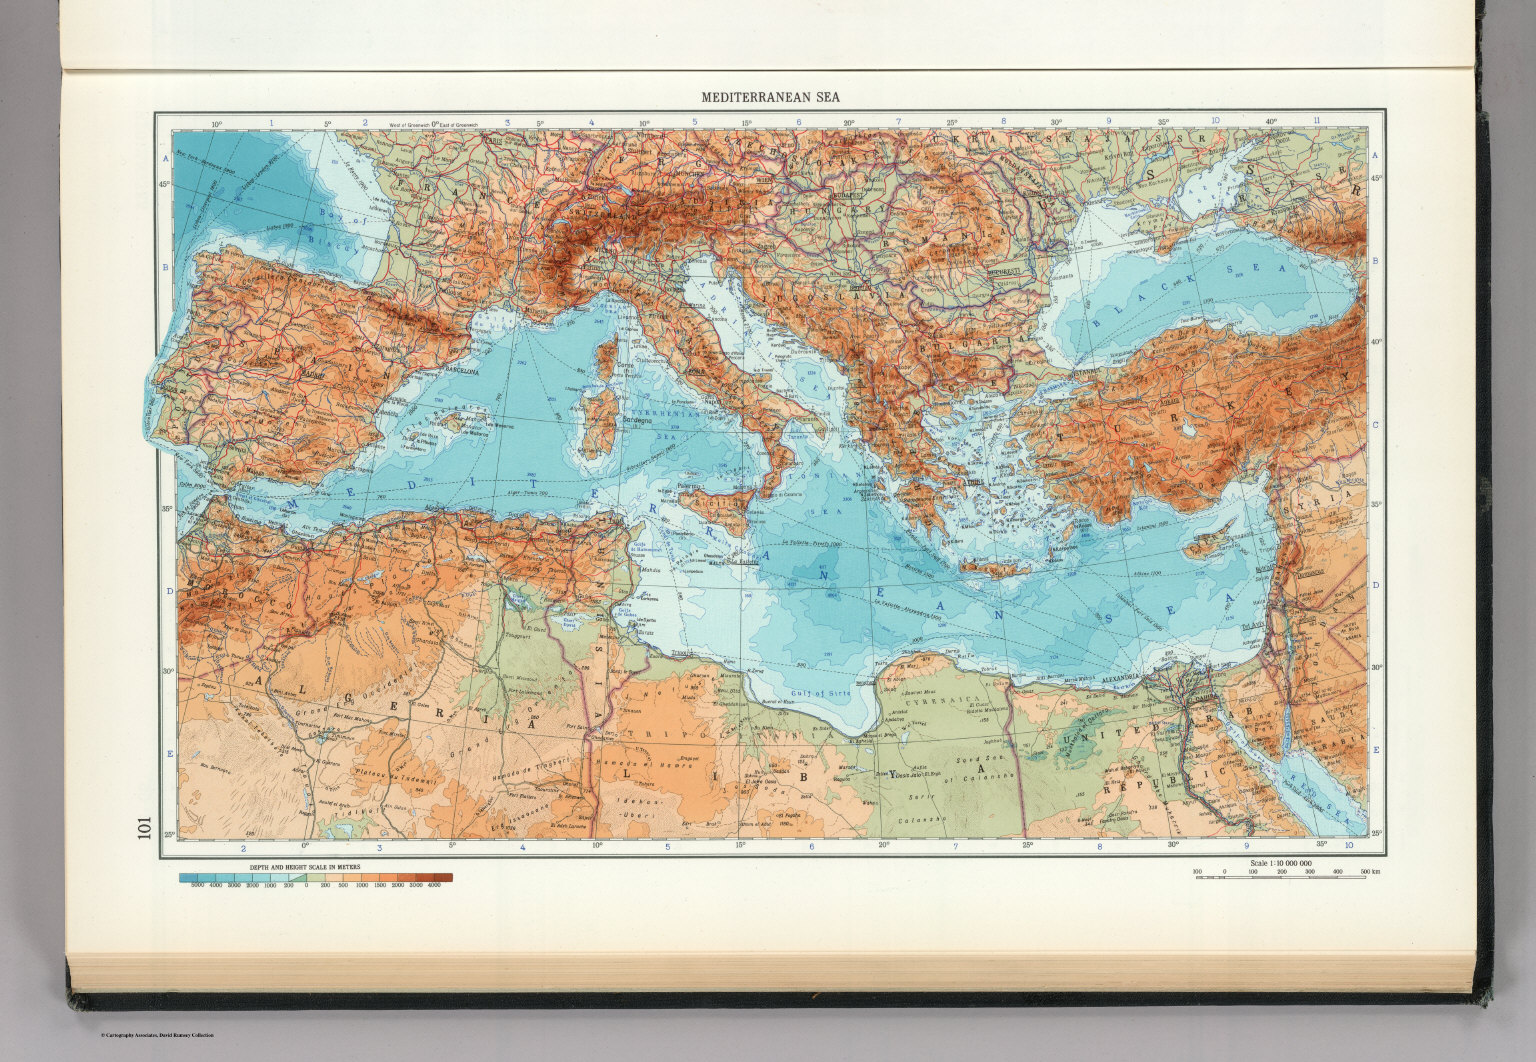 101 mediterranean sea the world atlas david rumsey historical mediterranean sea the world atlas gumiabroncs Images